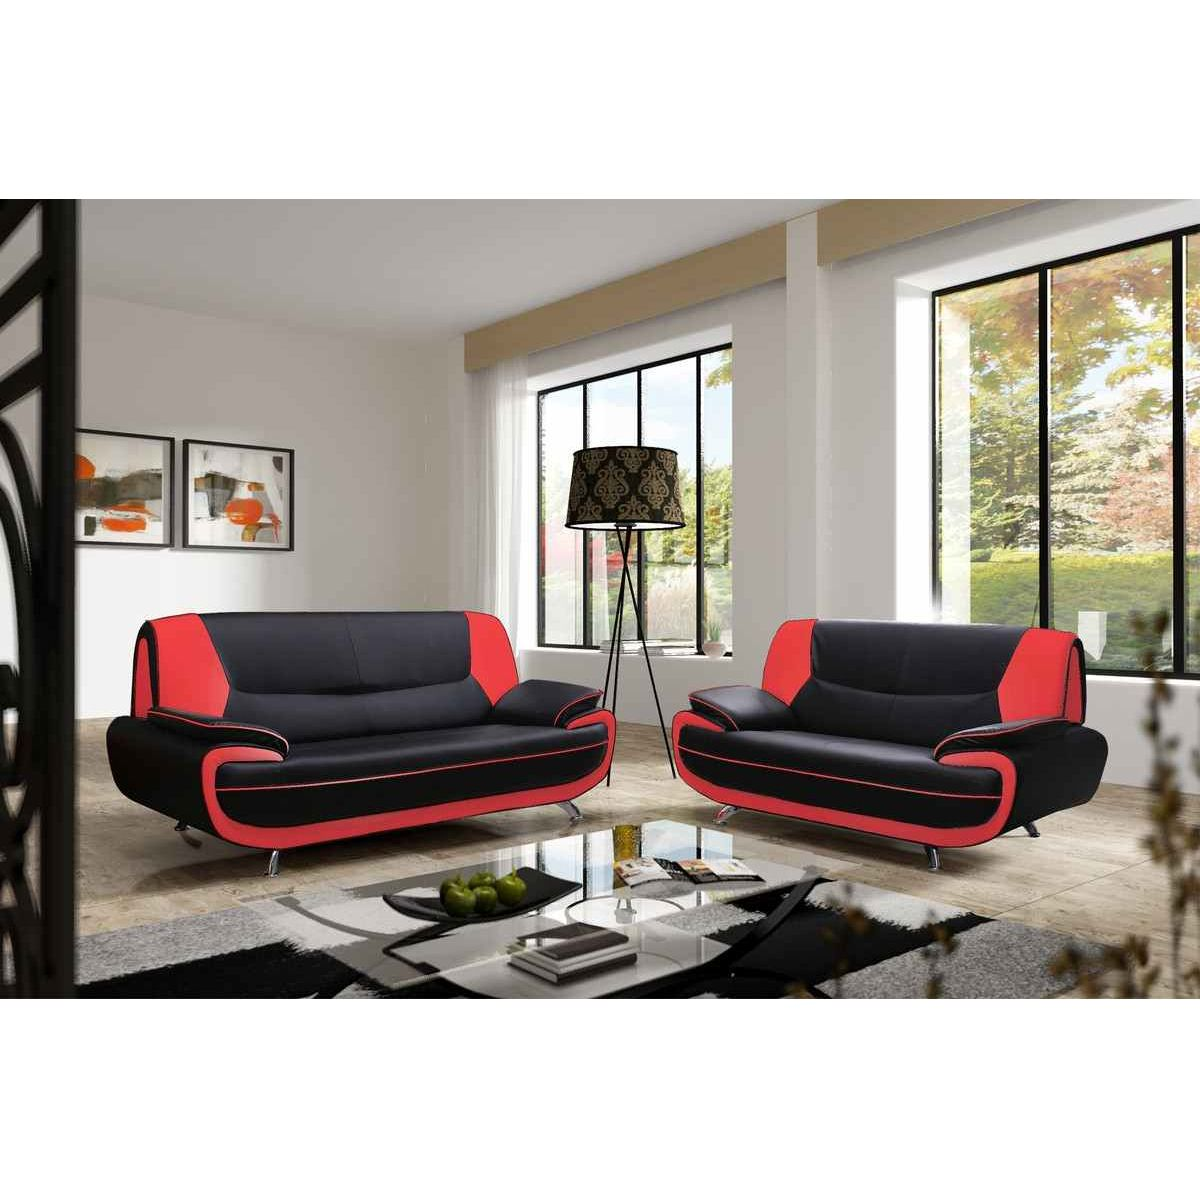 Deco in paris canape 3 2 places noir et rouge marita - Canape design places ...